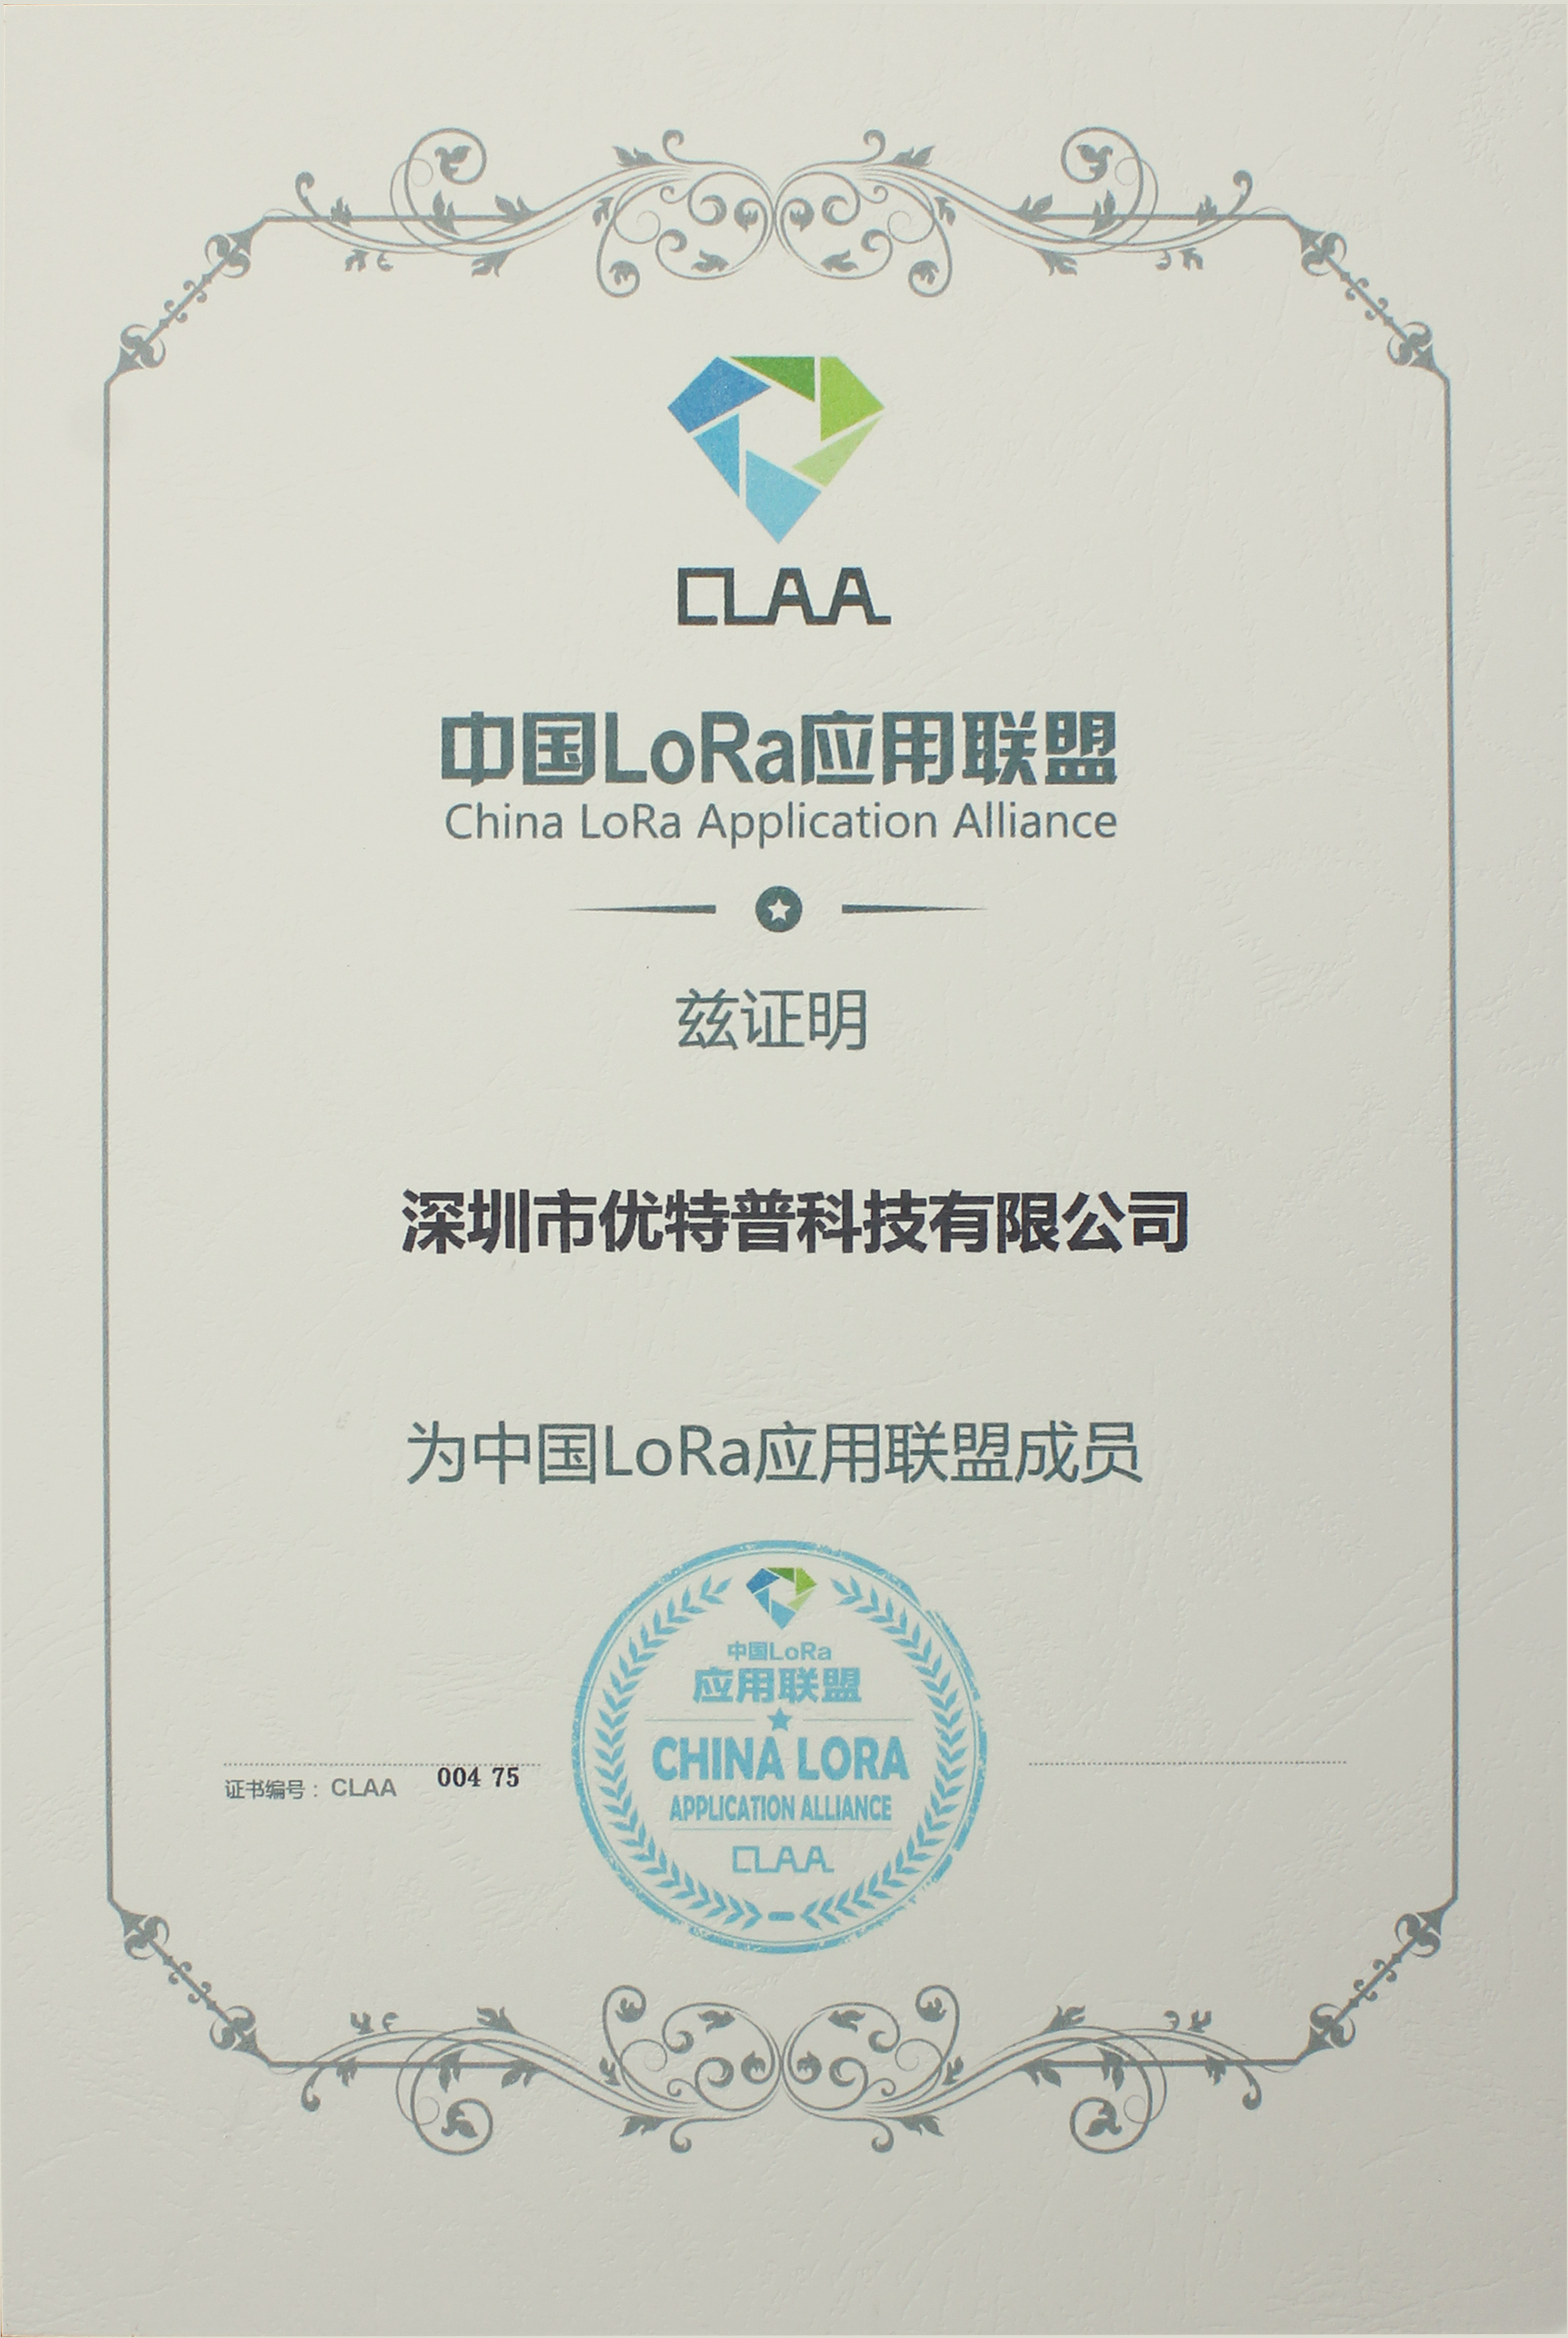 Member of China LoRa Application Alliance